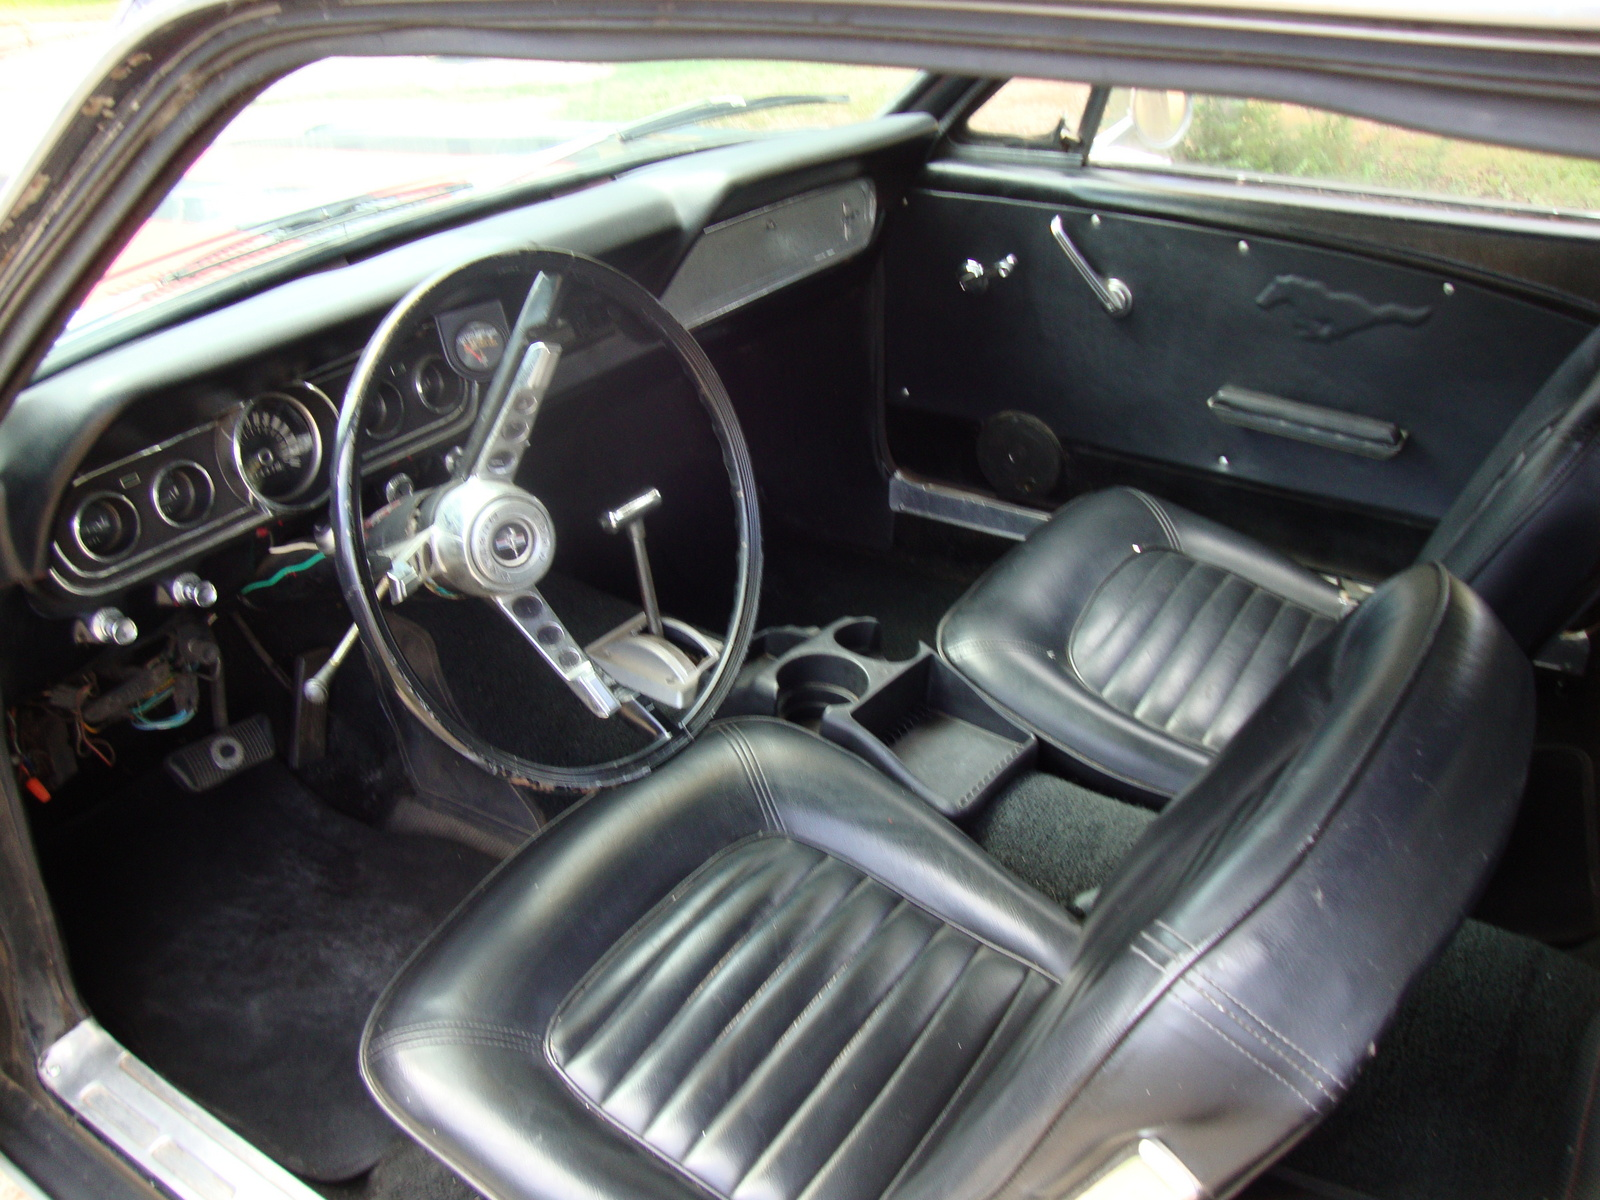 1966 Ford Mustang Interior Pictures Cargurus